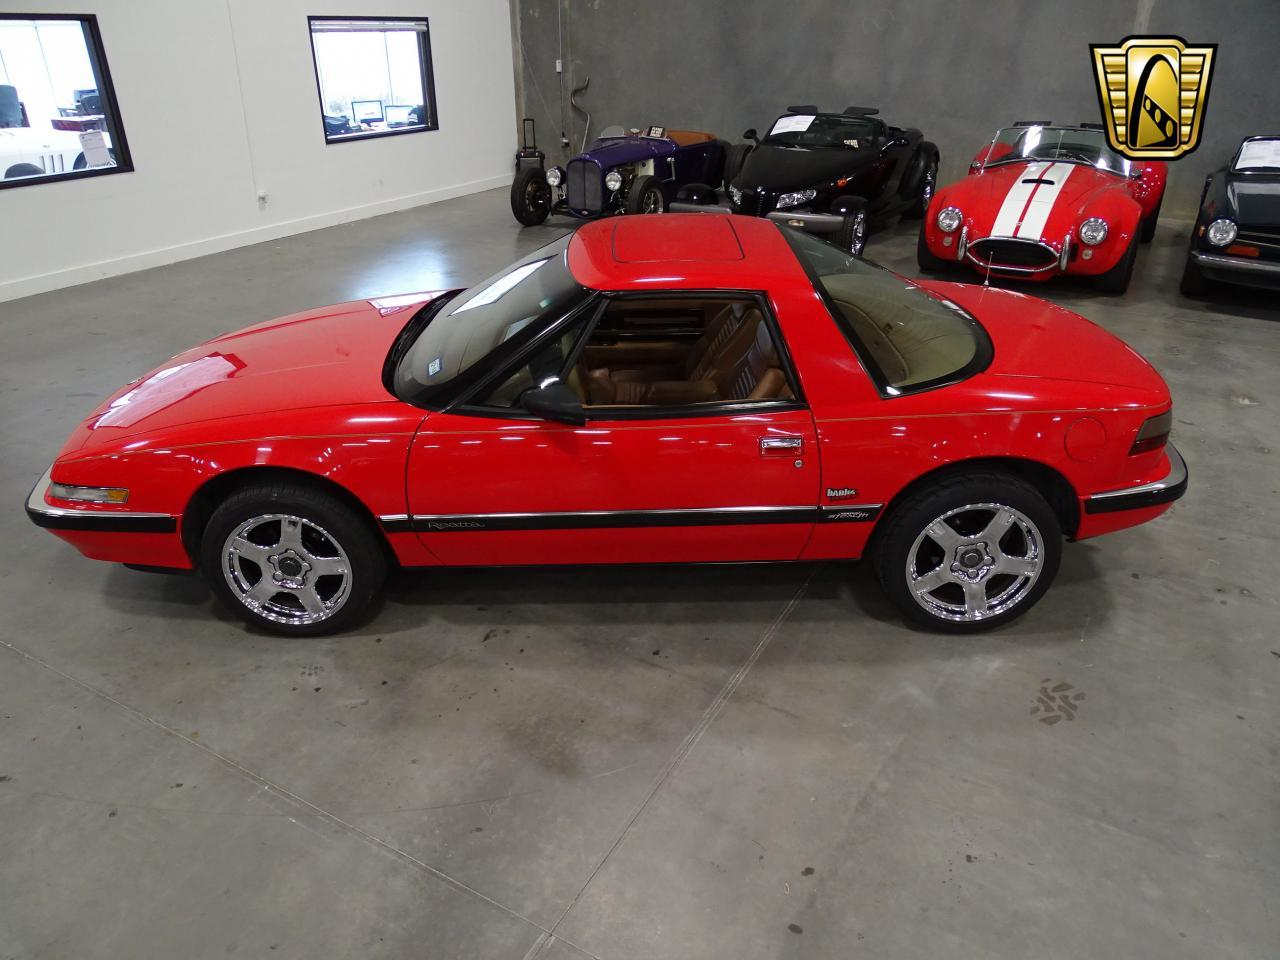 Large Picture of 1990 Reatta Offered by Gateway Classic Cars - Dallas - KOB1